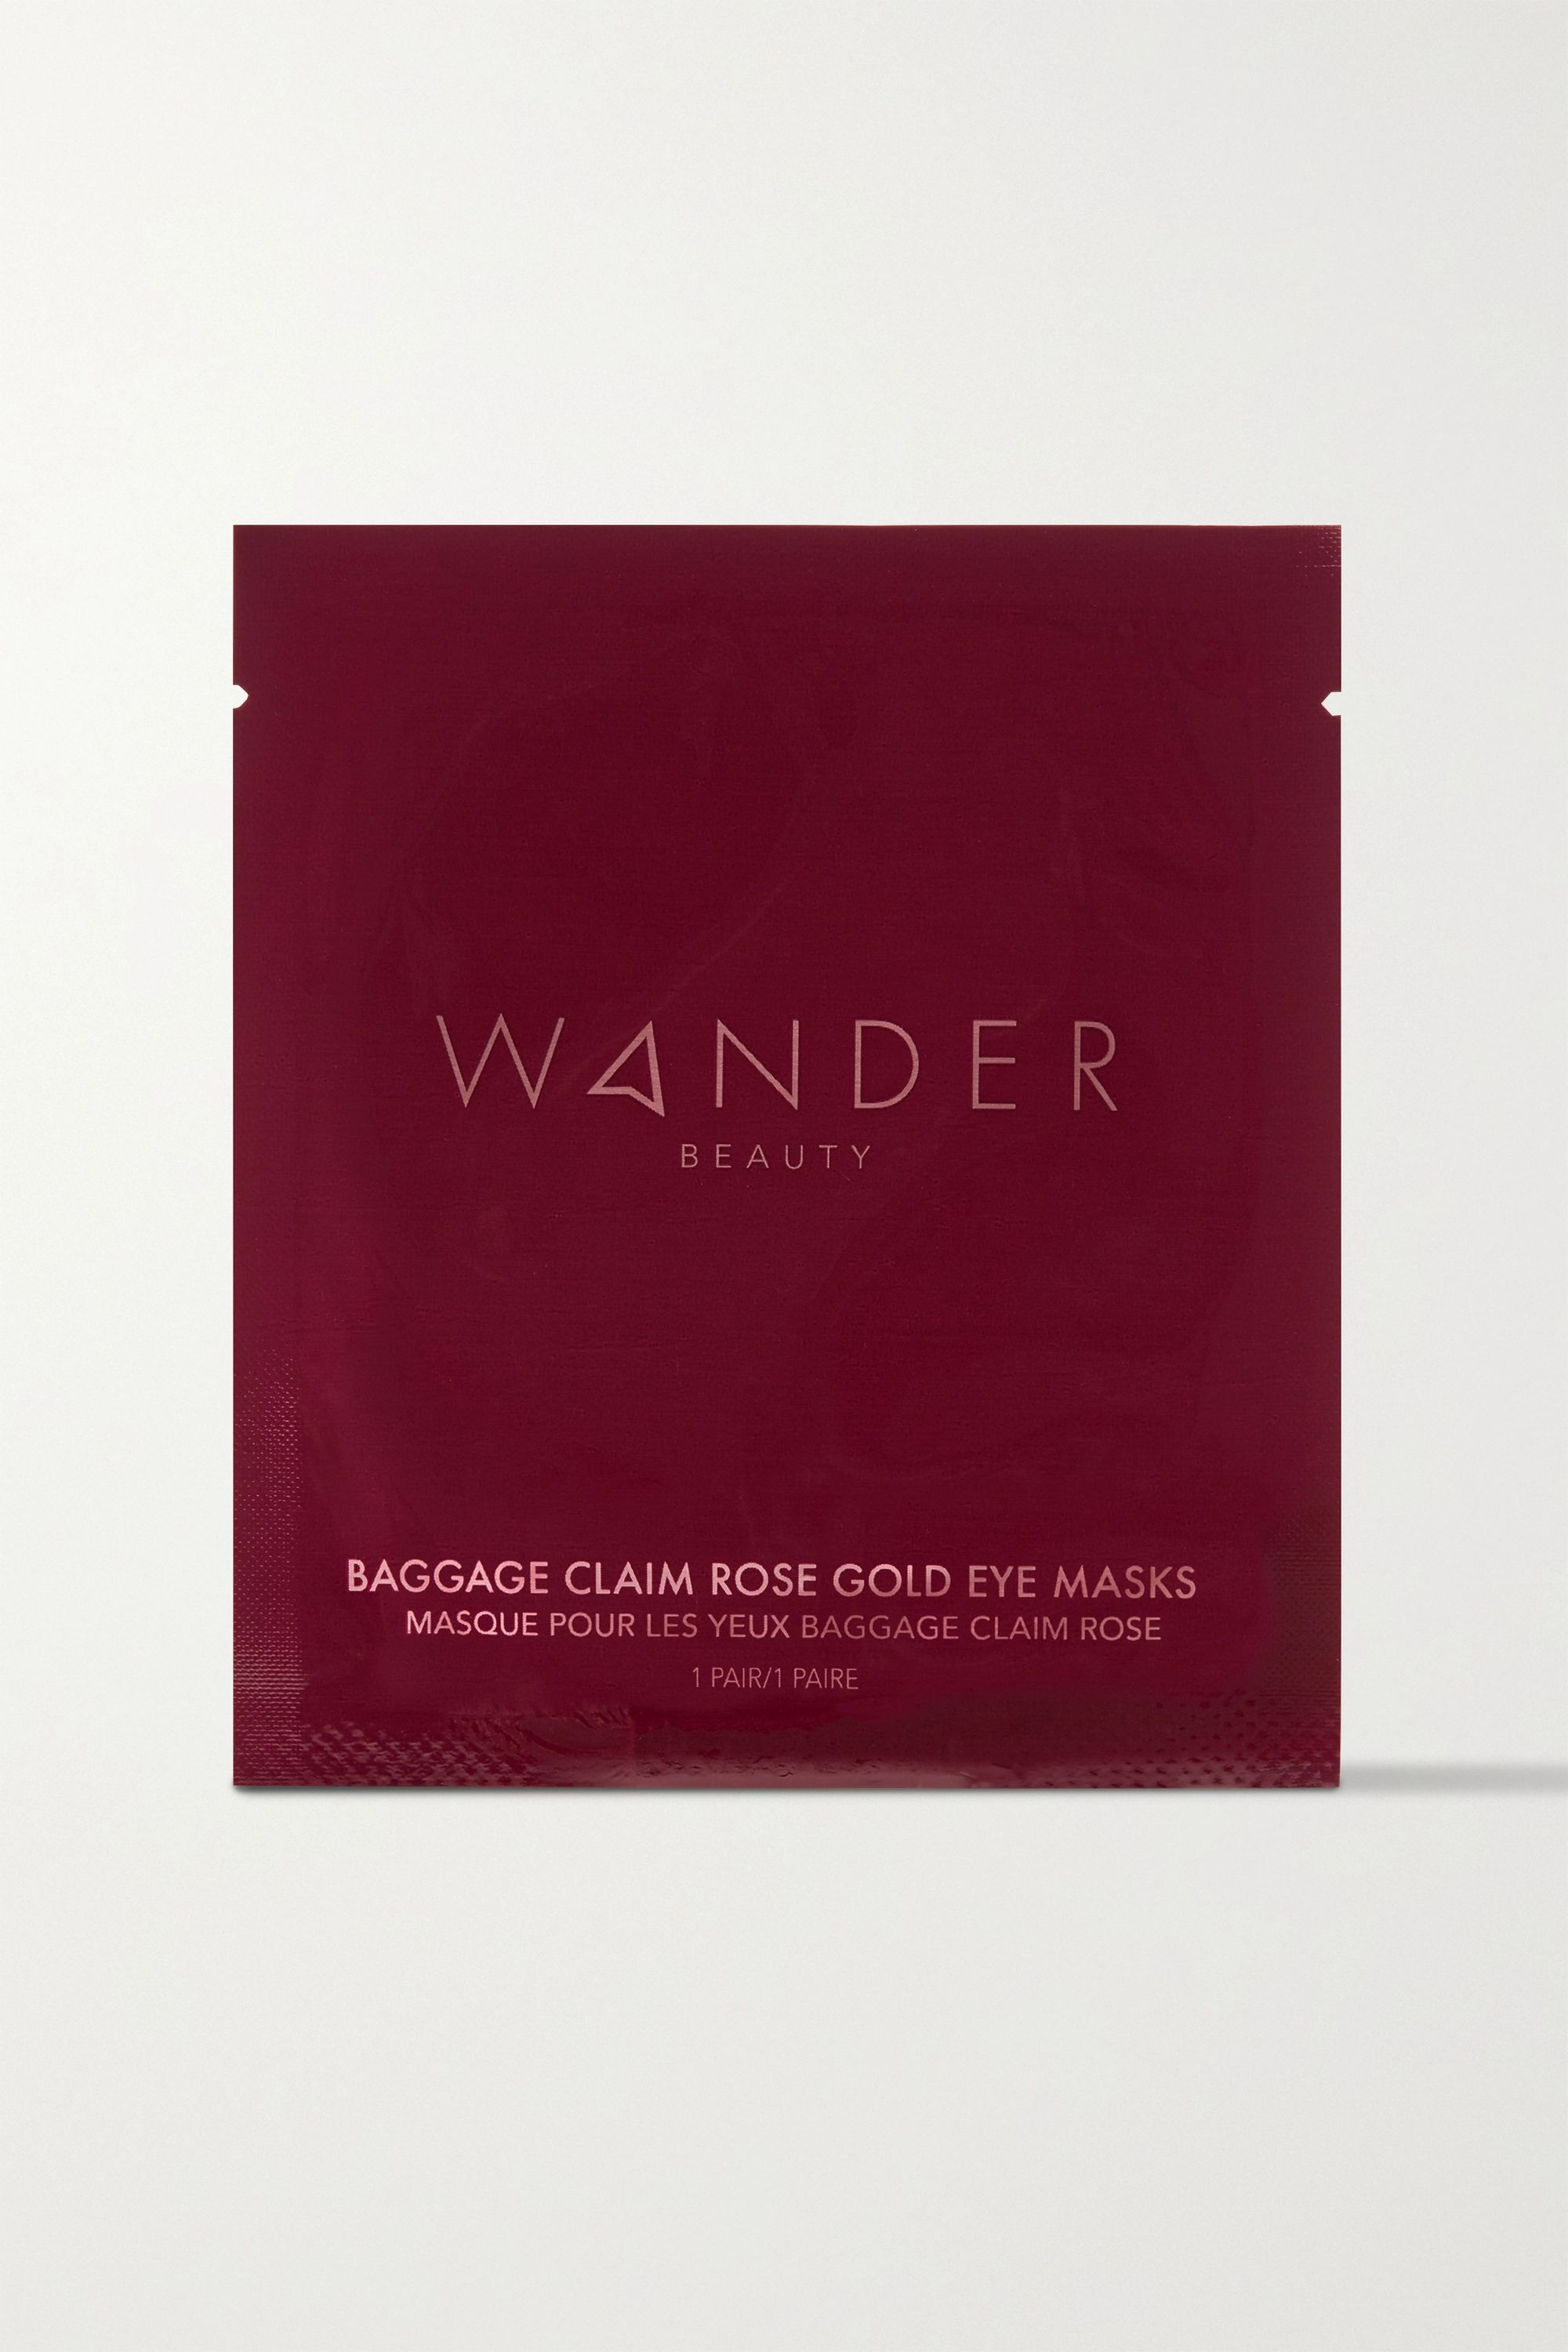 WANDER BEAUTY Baggage Claim Rose Gold Eye Masks x 6